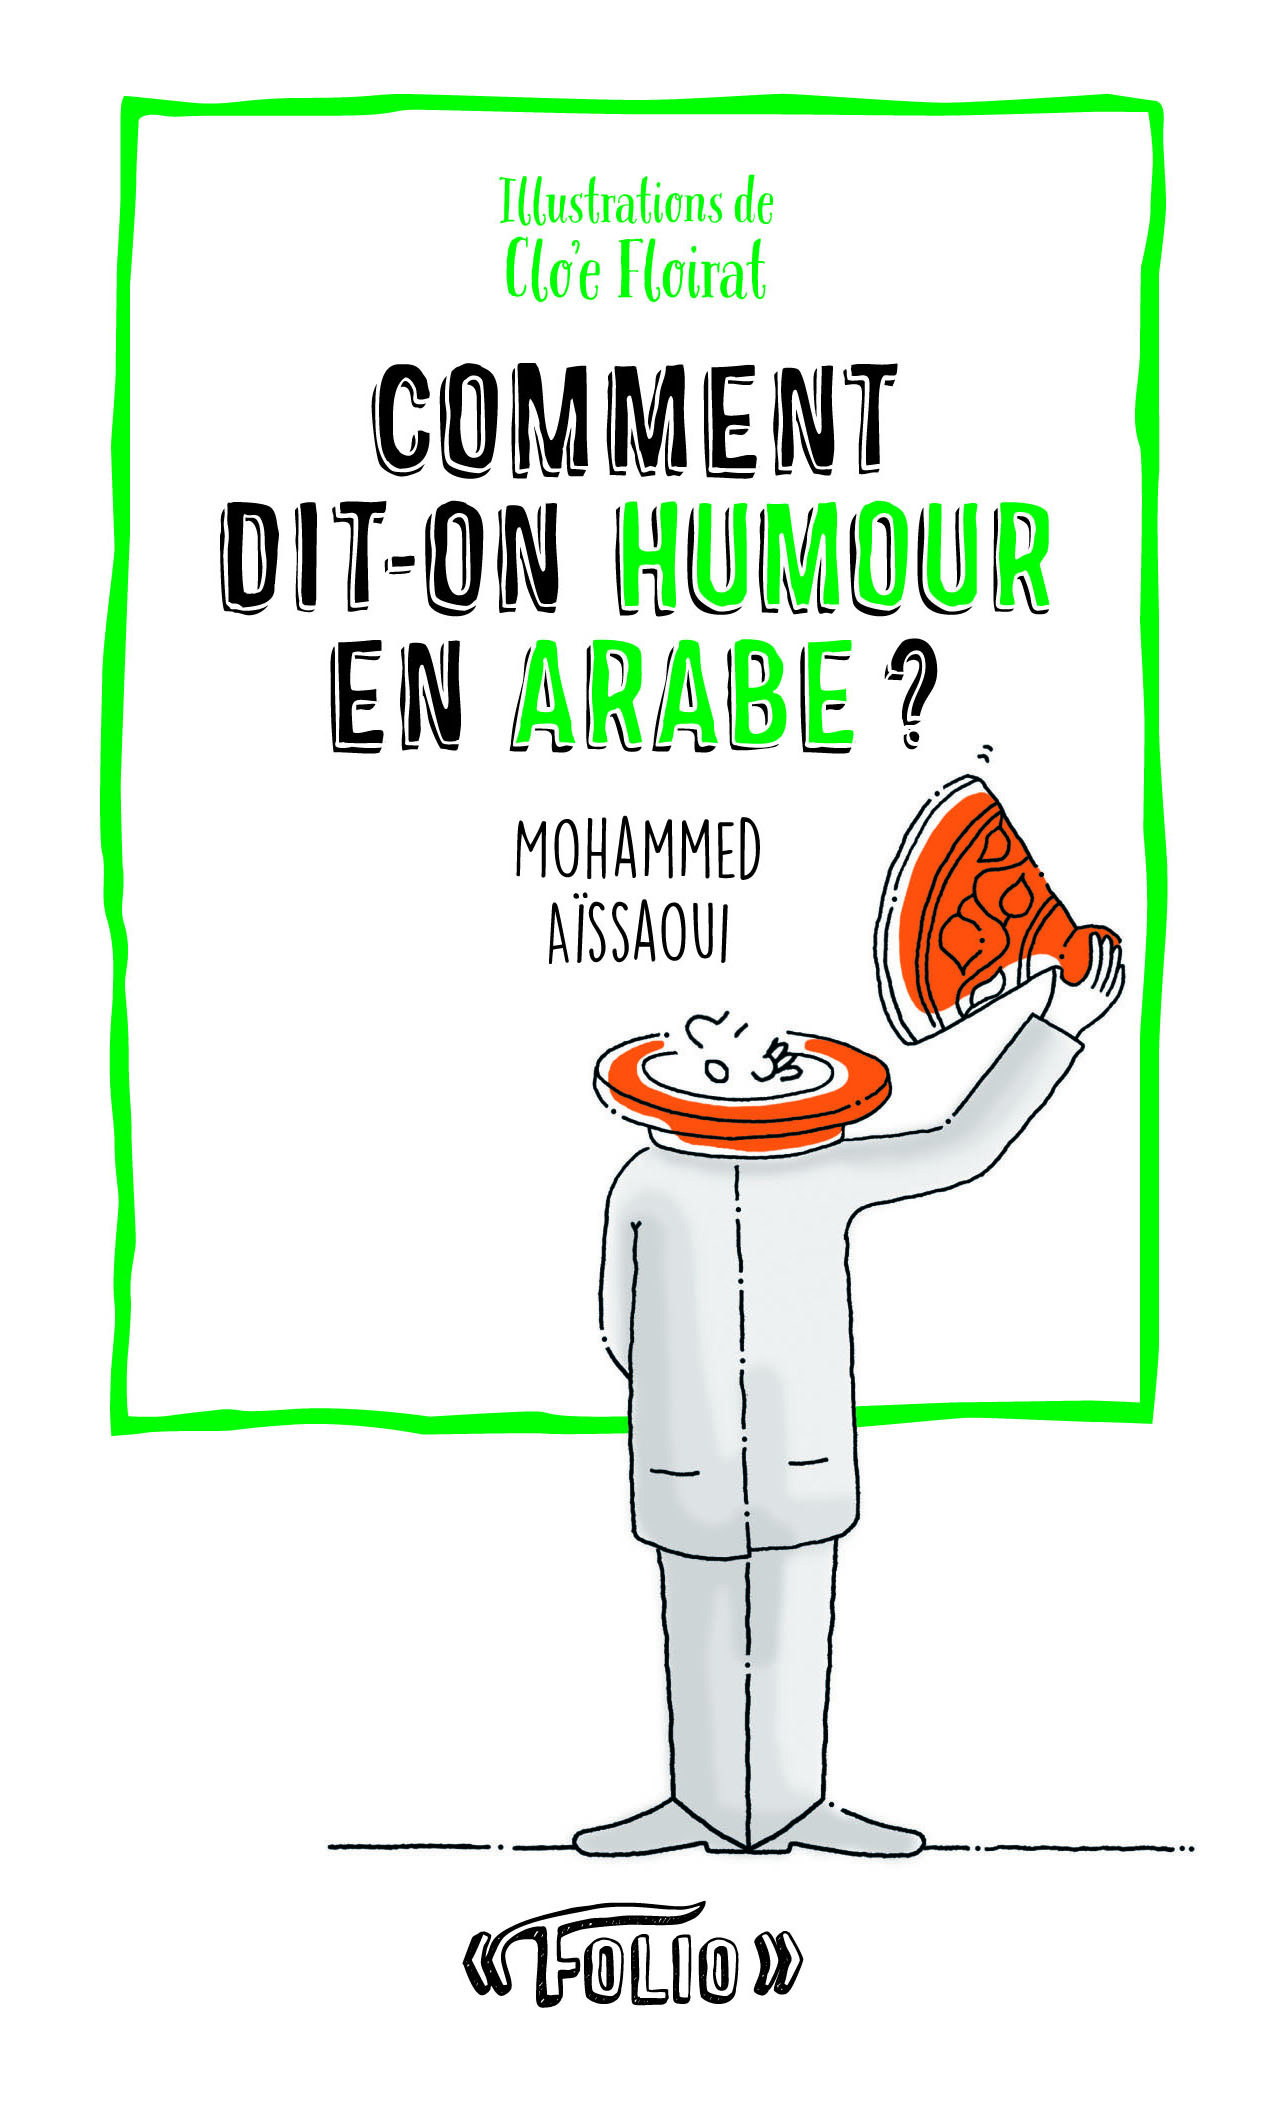 COMMENT DIT-ON HUMOUR EN ARABE ?